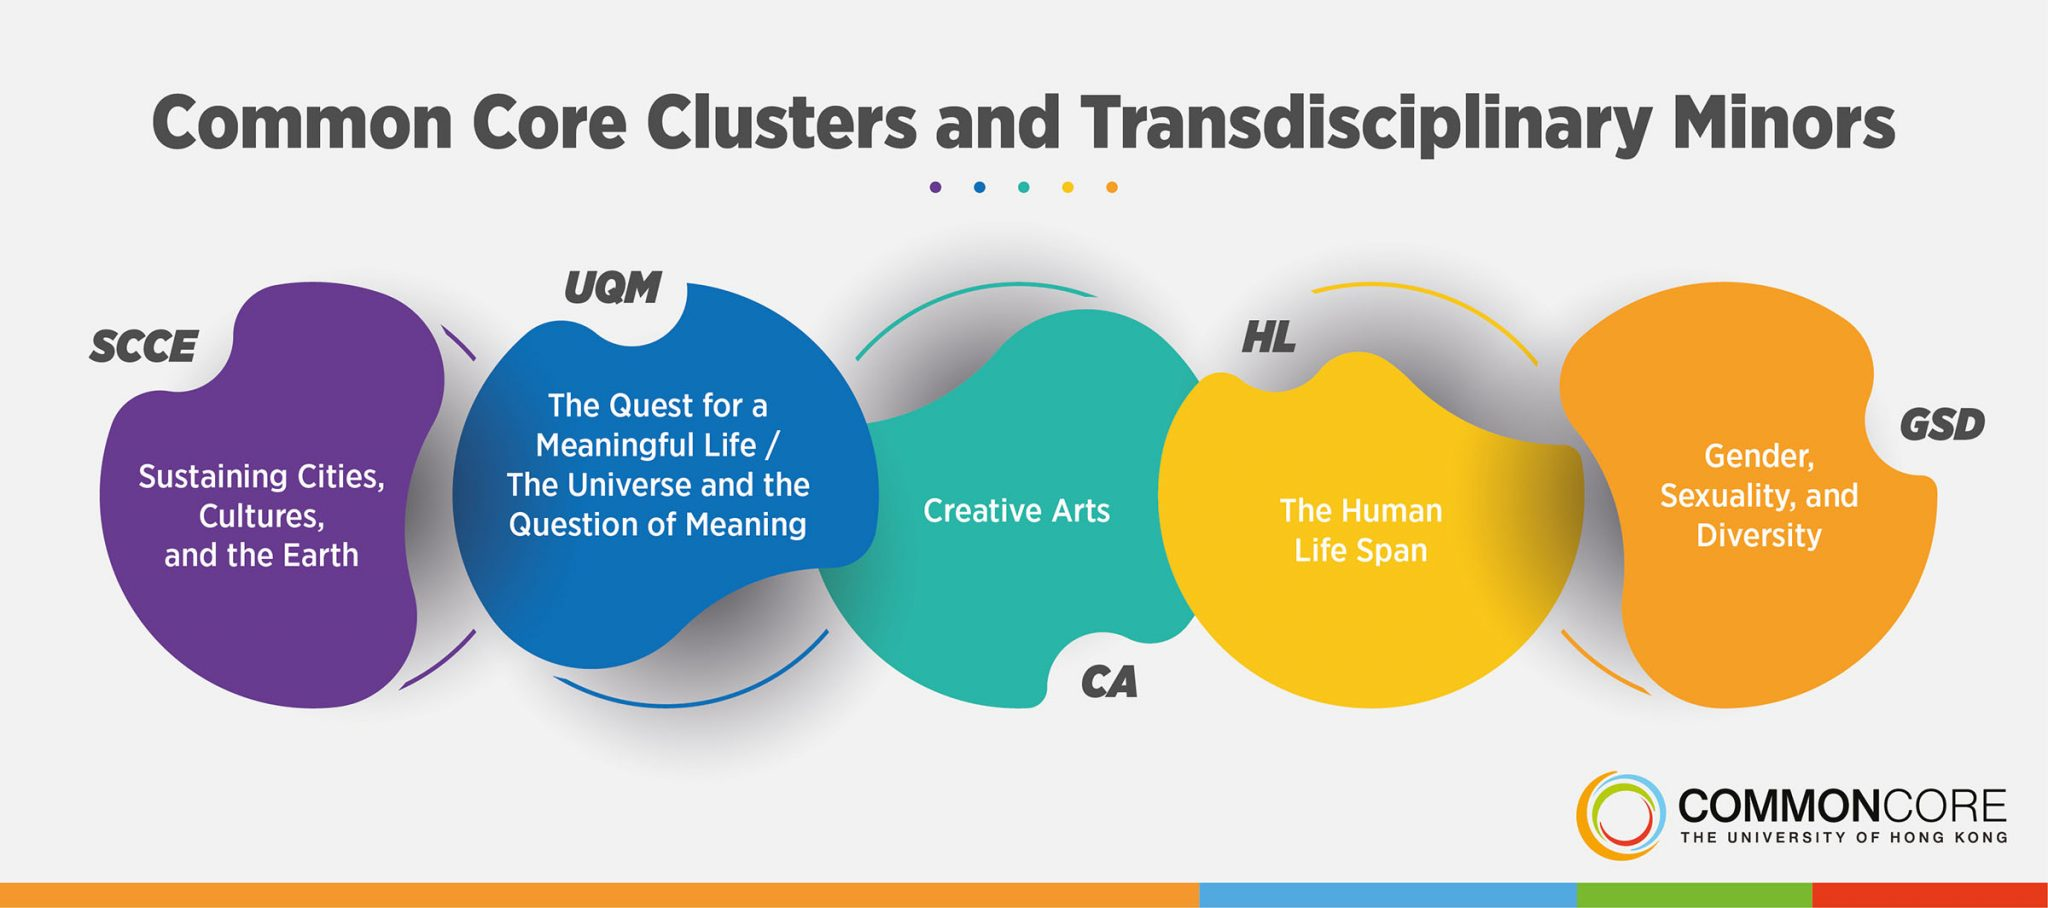 Common Core Clusters and Transdisciplinary Minors